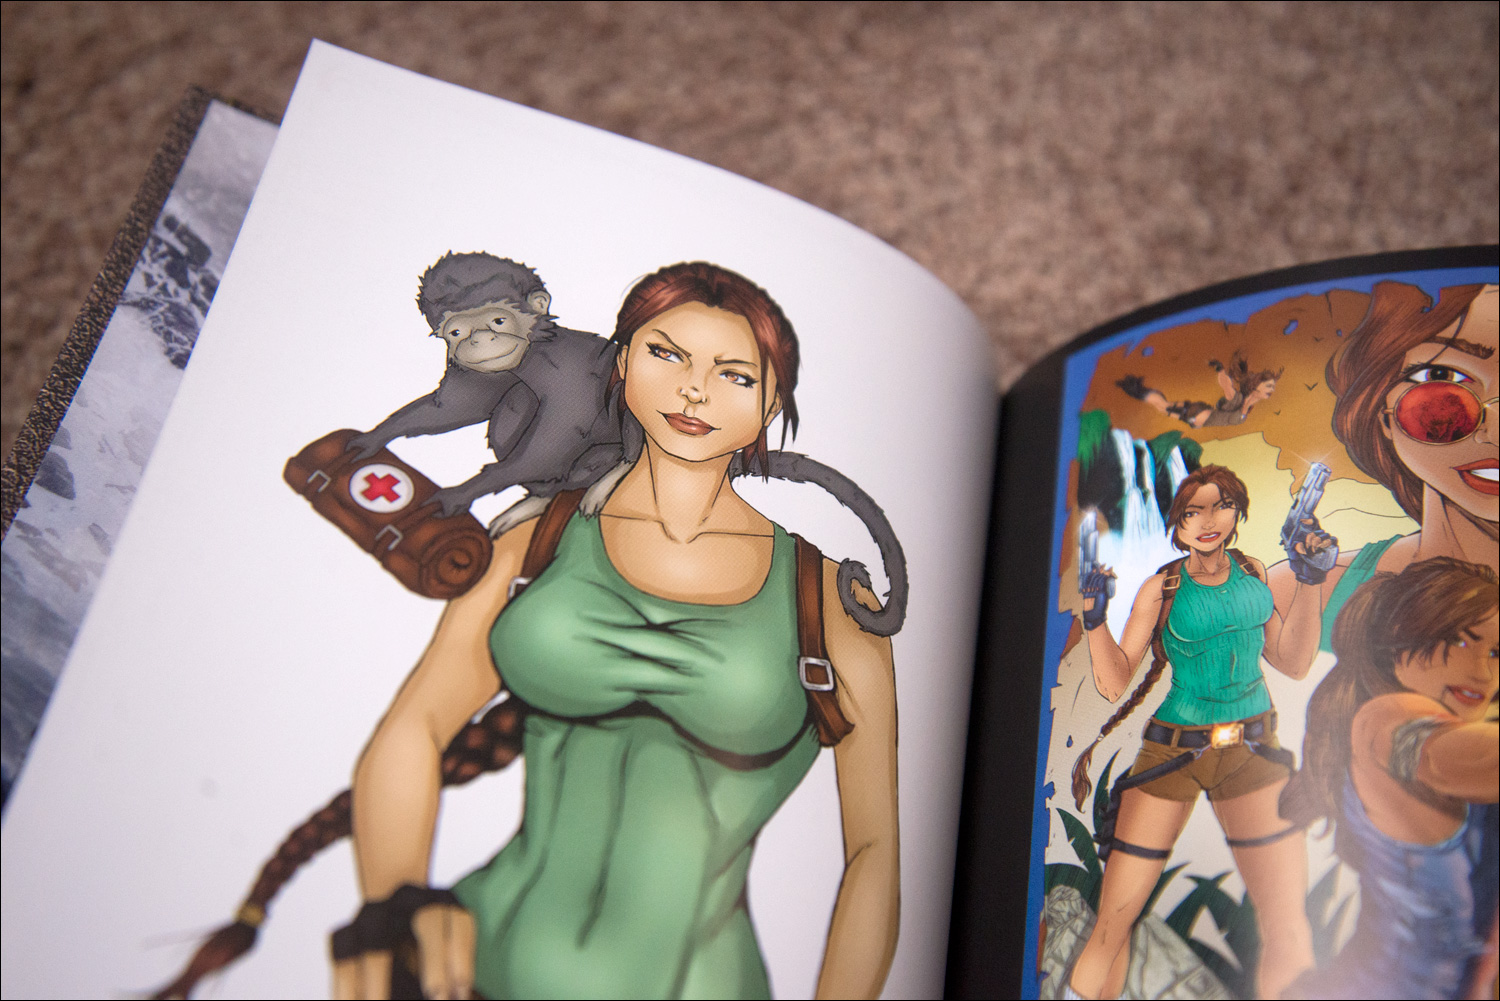 rise-of-the-tomb-raider-20-year-celebration-artbook-edition-art-3